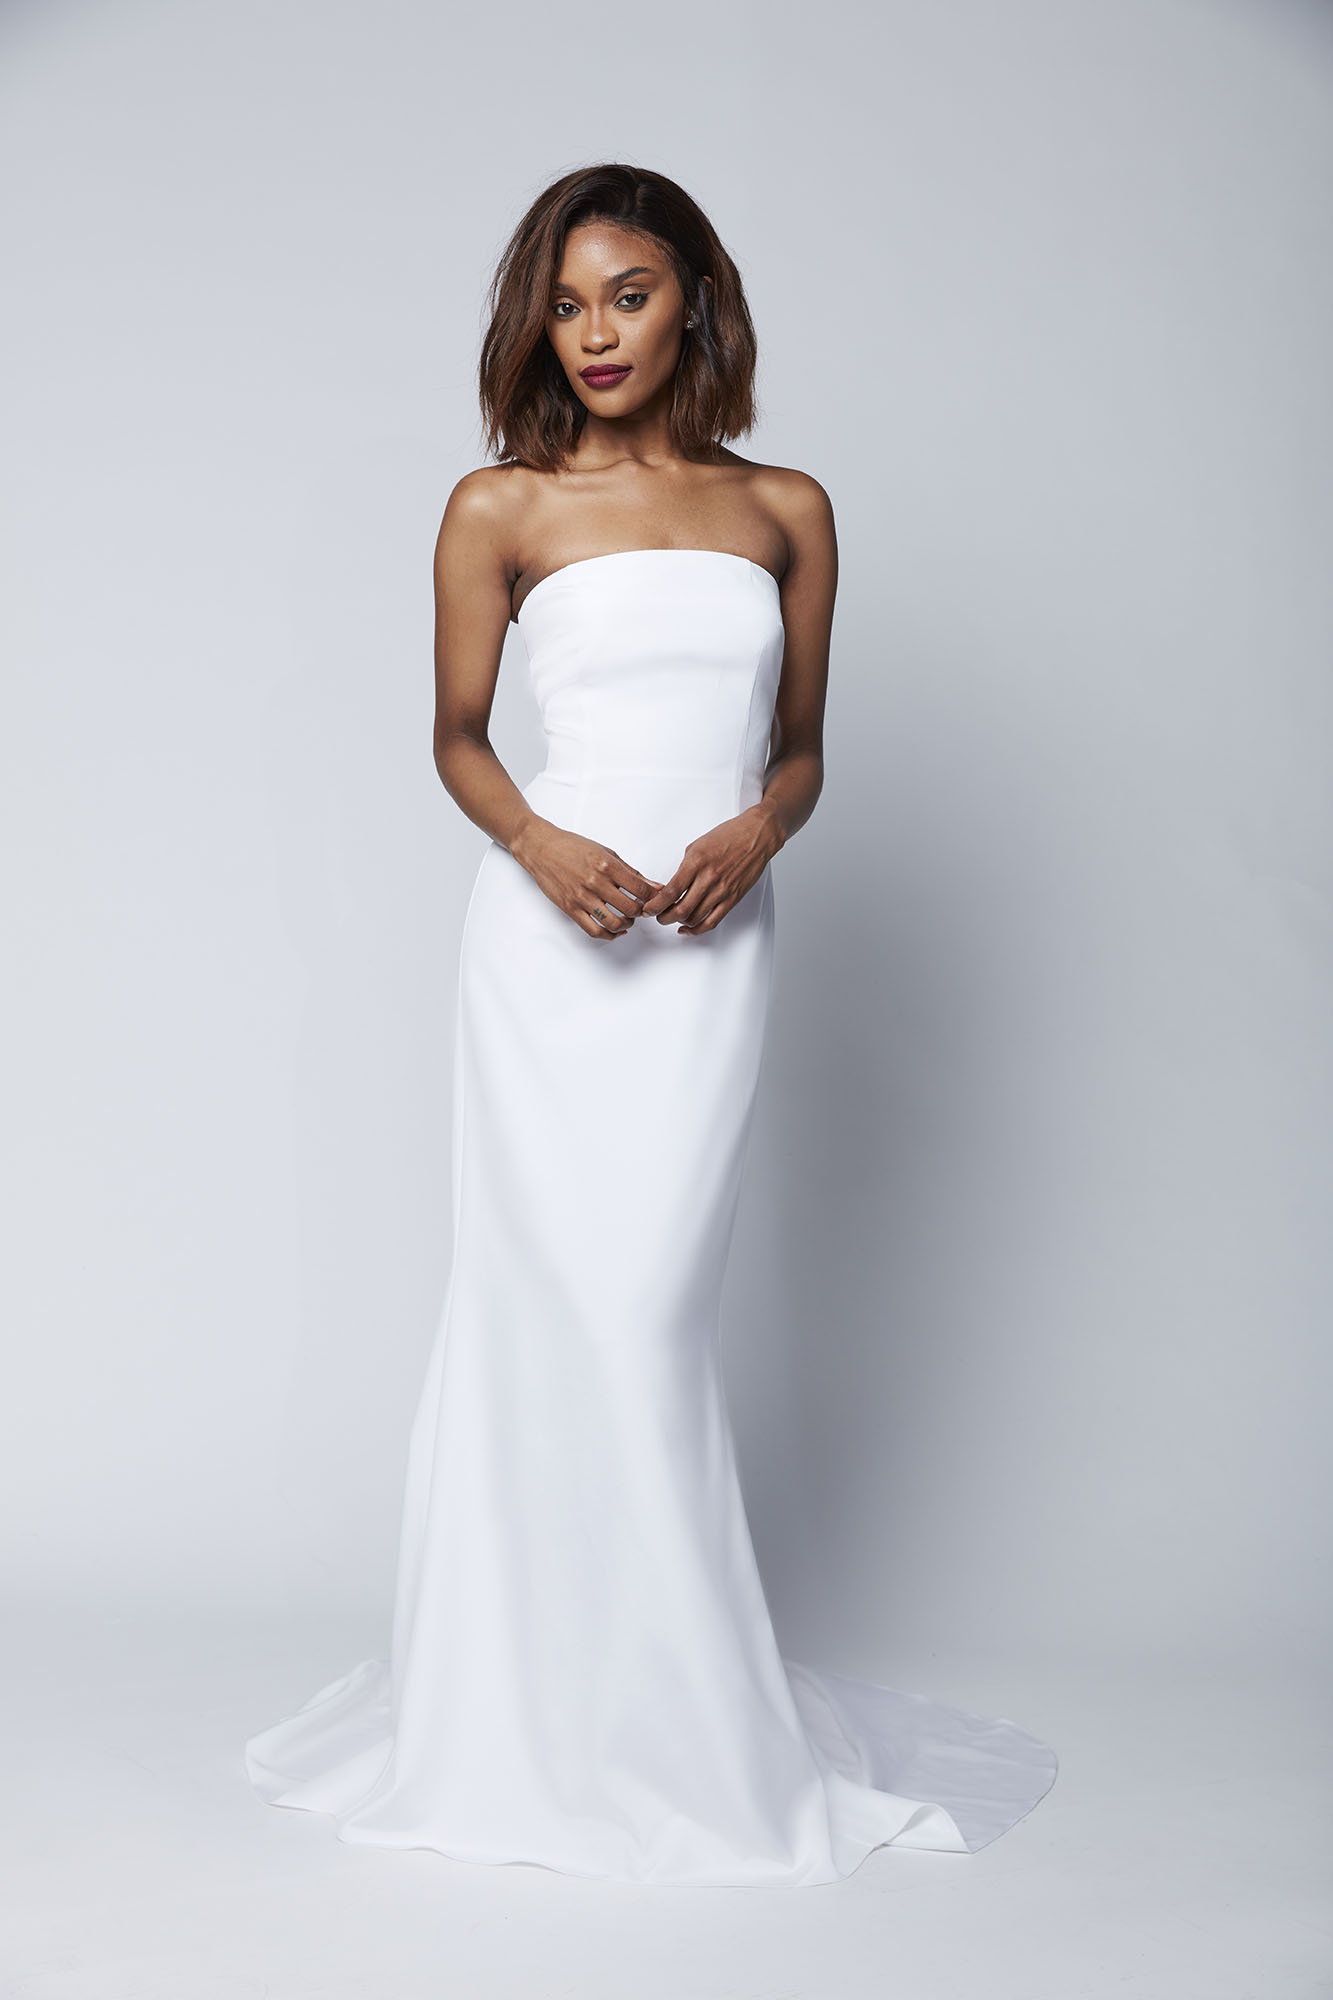 The strapless Caitlin gown with its full train is a perfect choice for the minimalist bride who wants a clean, architectural look on her wedding day.